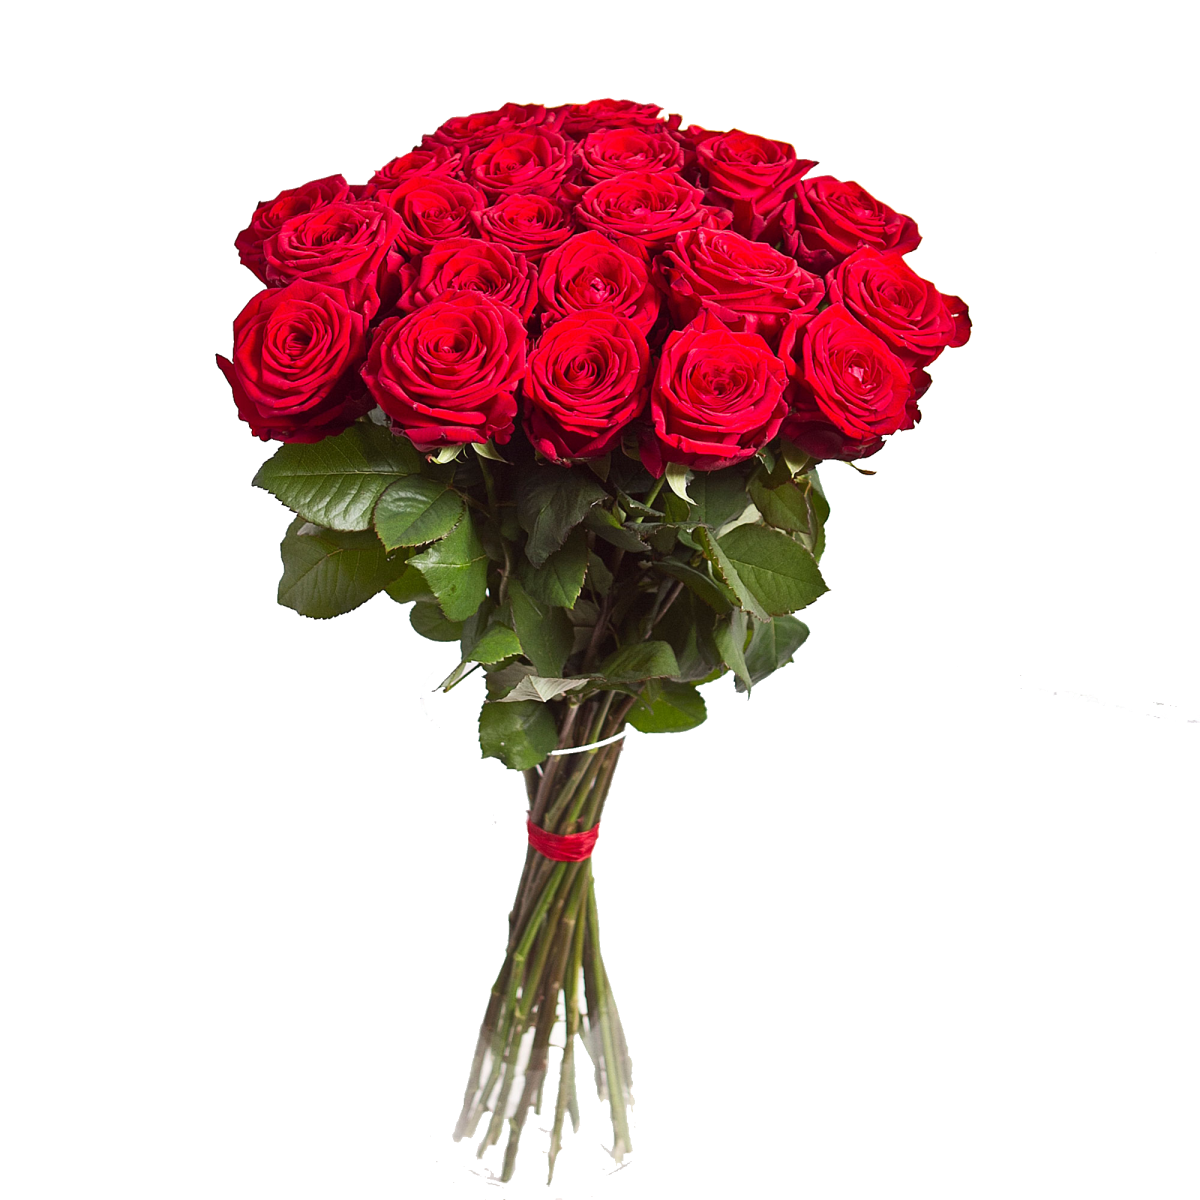 Bouquet Of Flowers Png Image Flowers Bouquet Red Rose Bouquet Red Rose Pictures